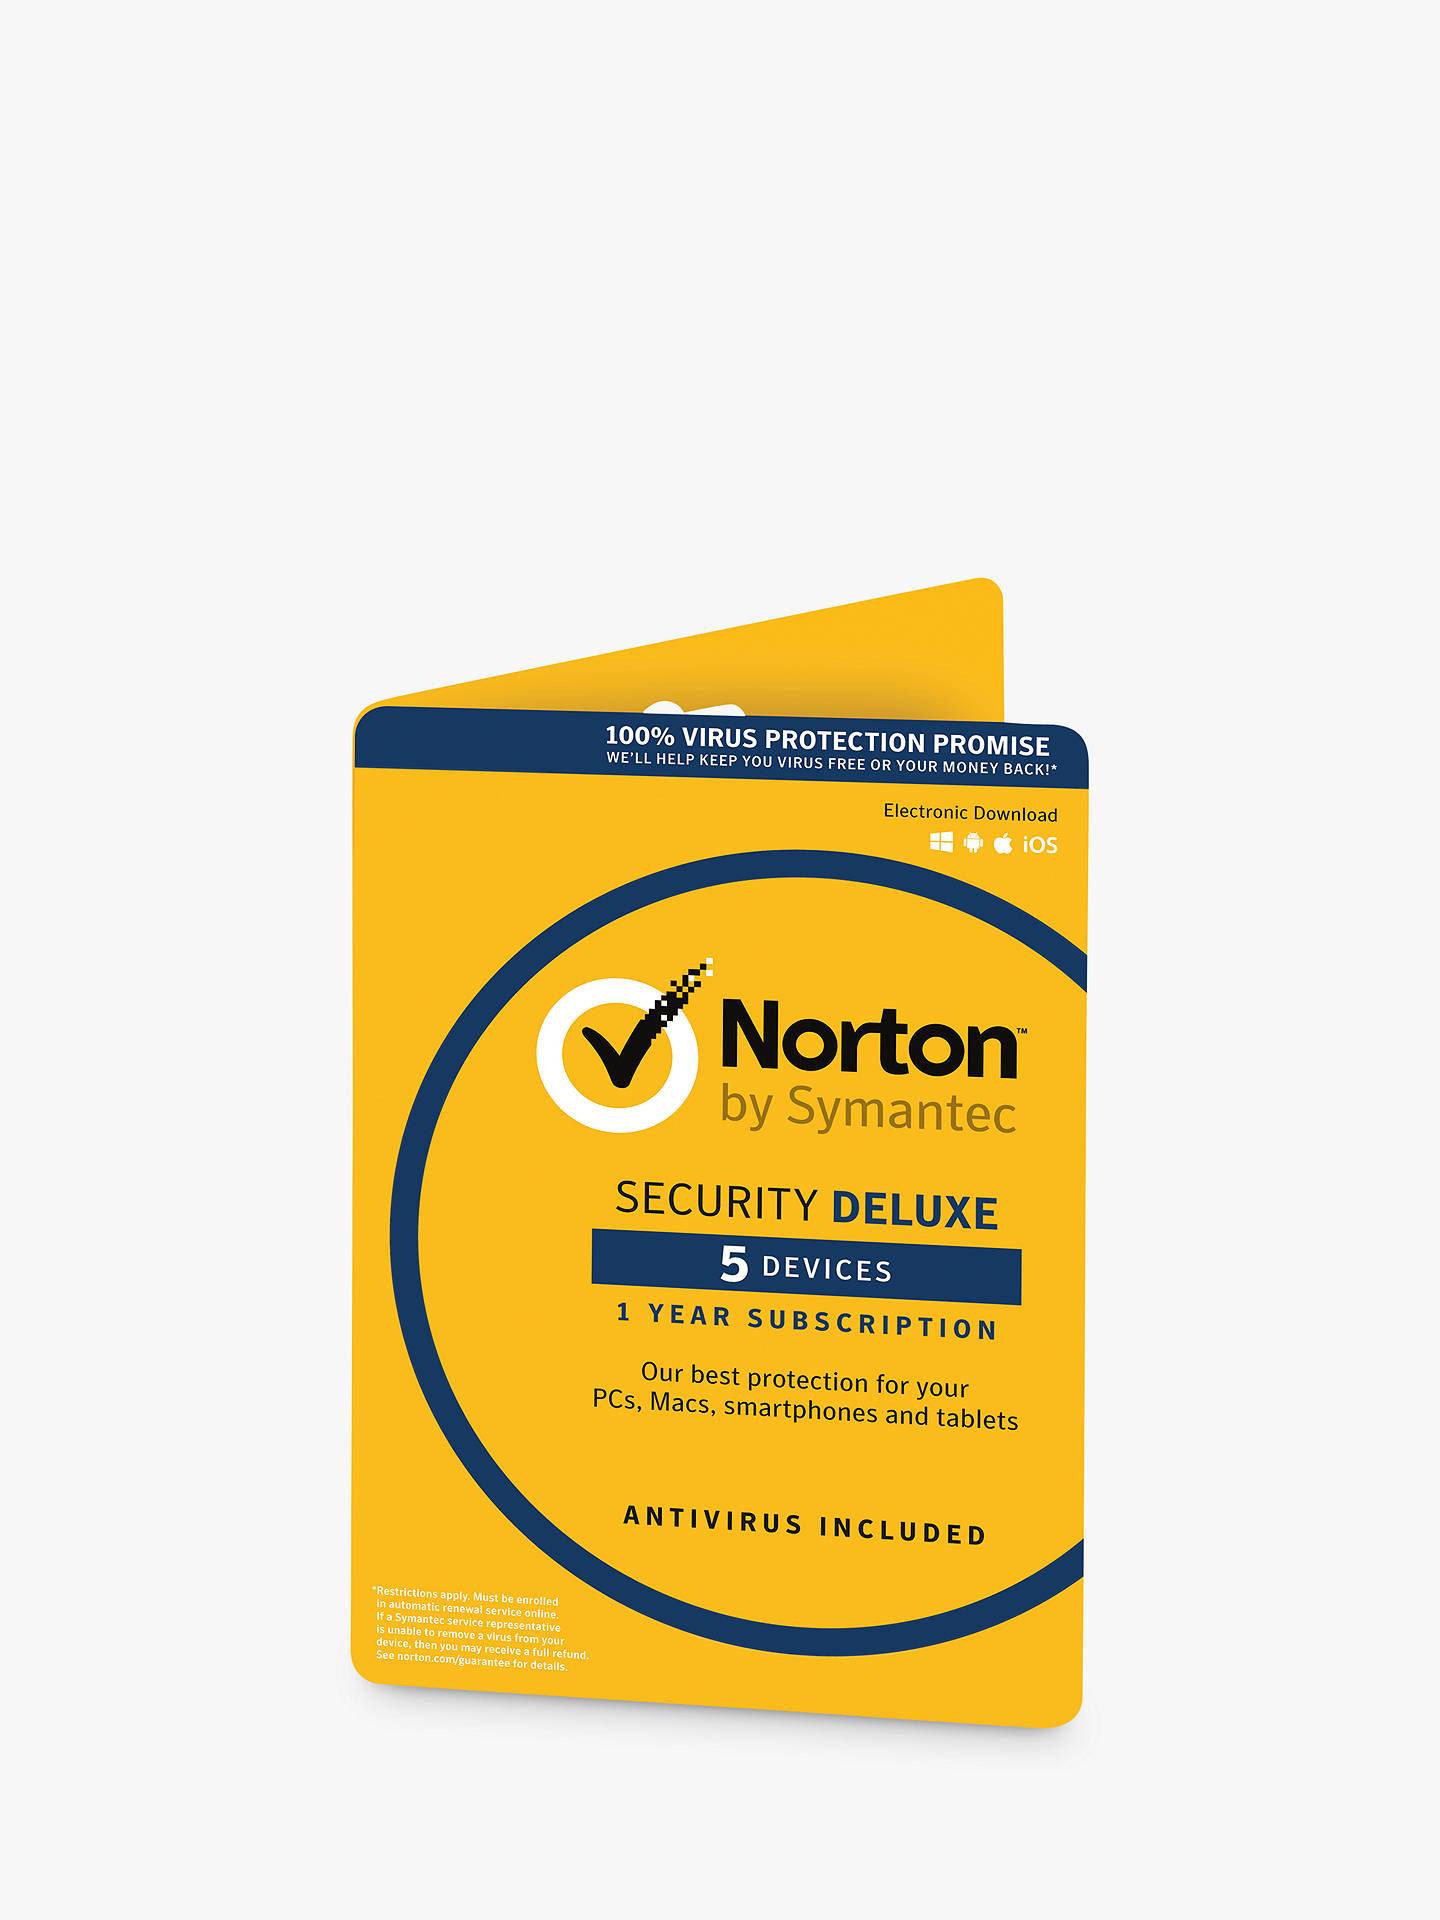 Norton internet security australia